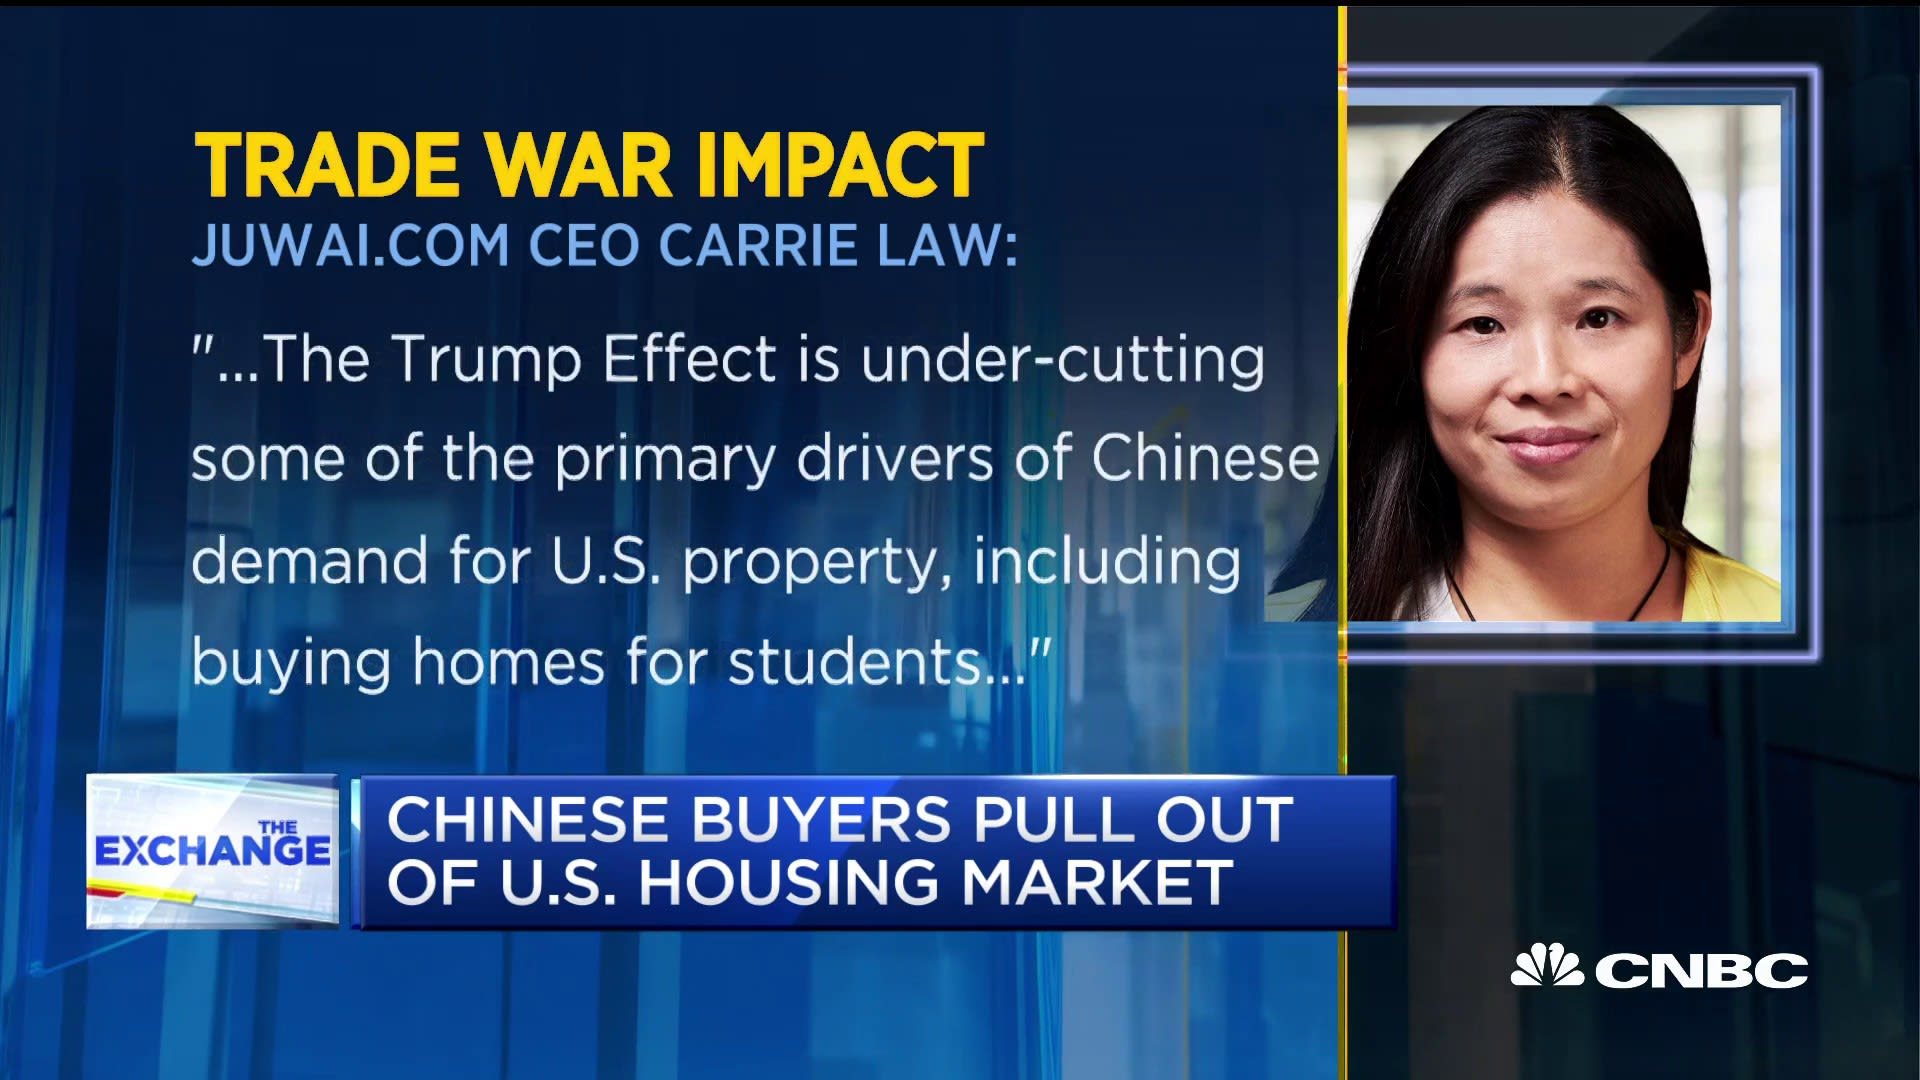 Foreign purchases of American homes plunge 36% as Chinese buyers flee the market